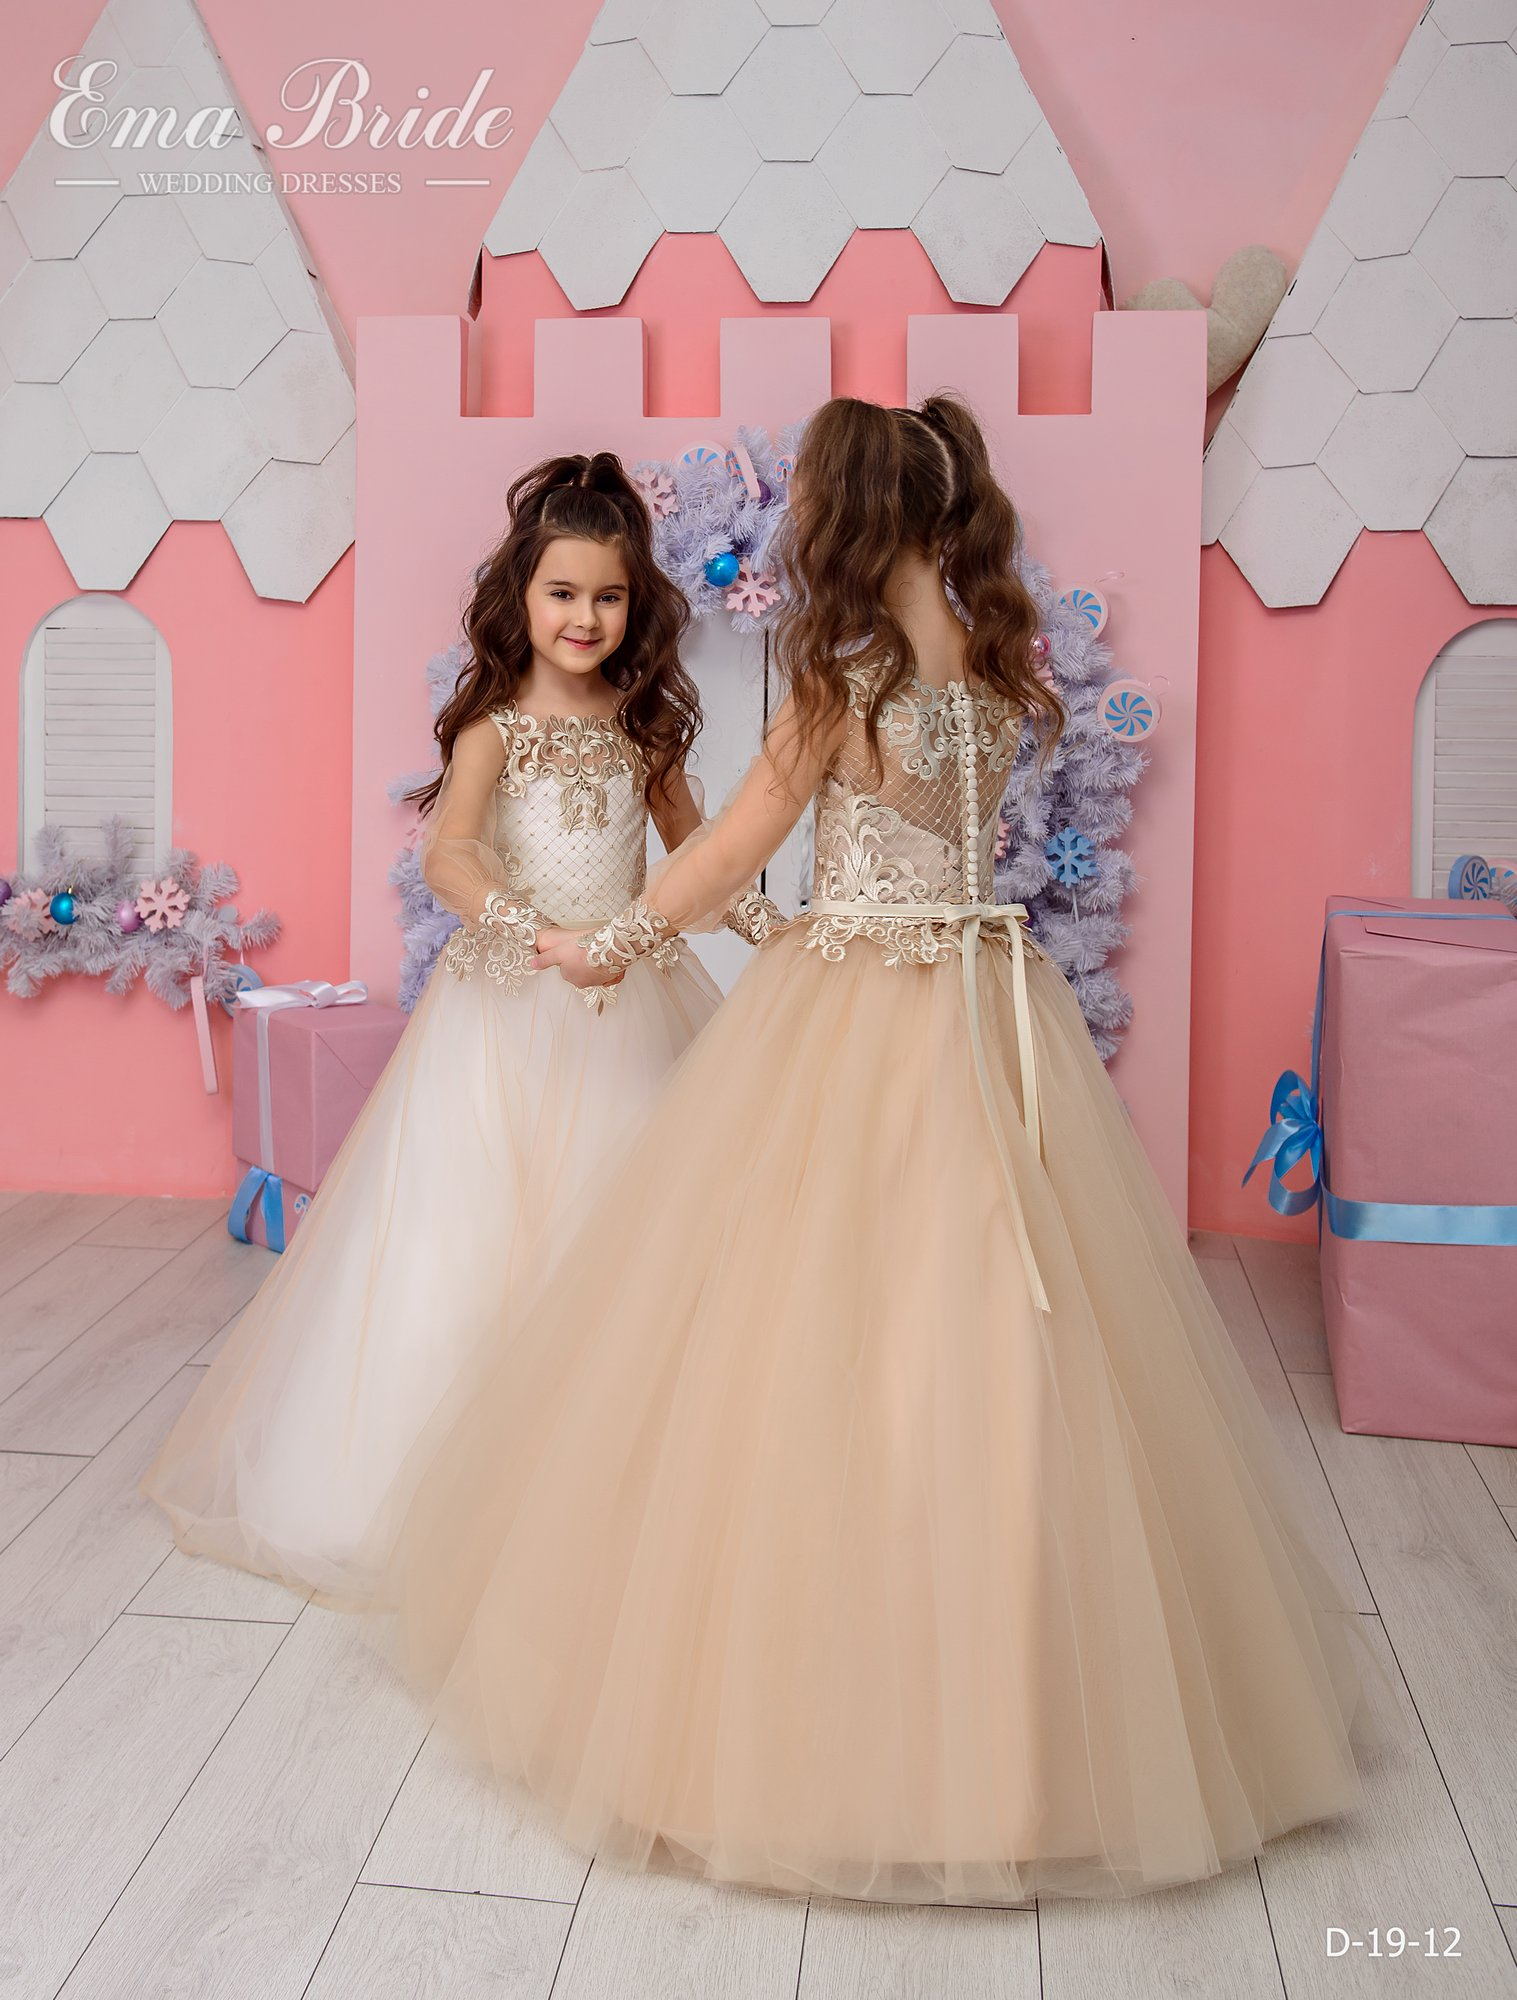 Children's dress by EmaBride D-19-12 2019-2